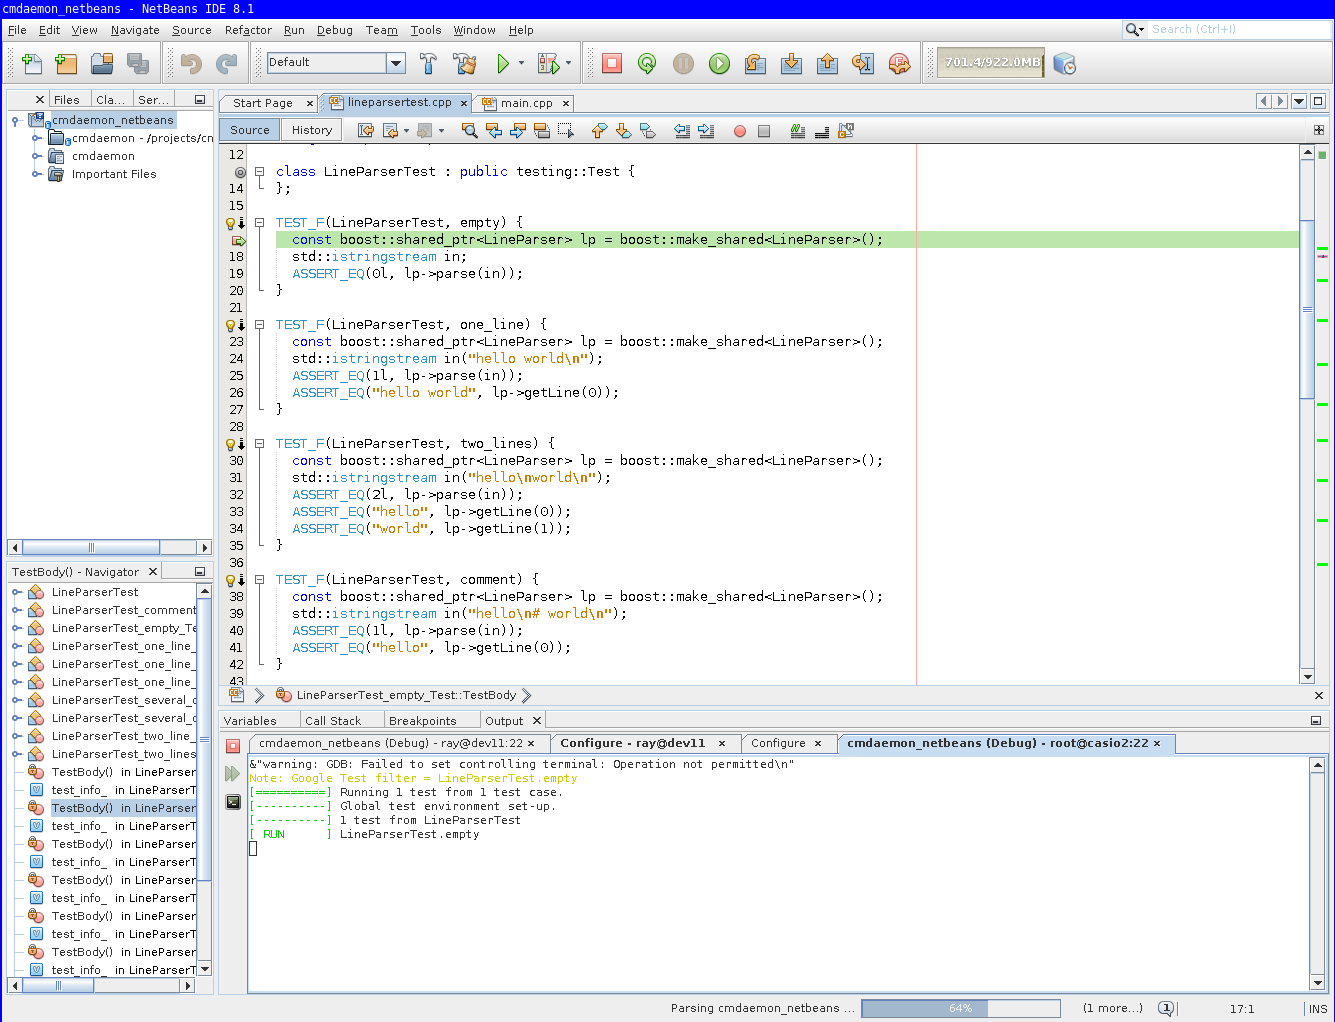 Remote debugging with NetBeans 8 1 for C/C++